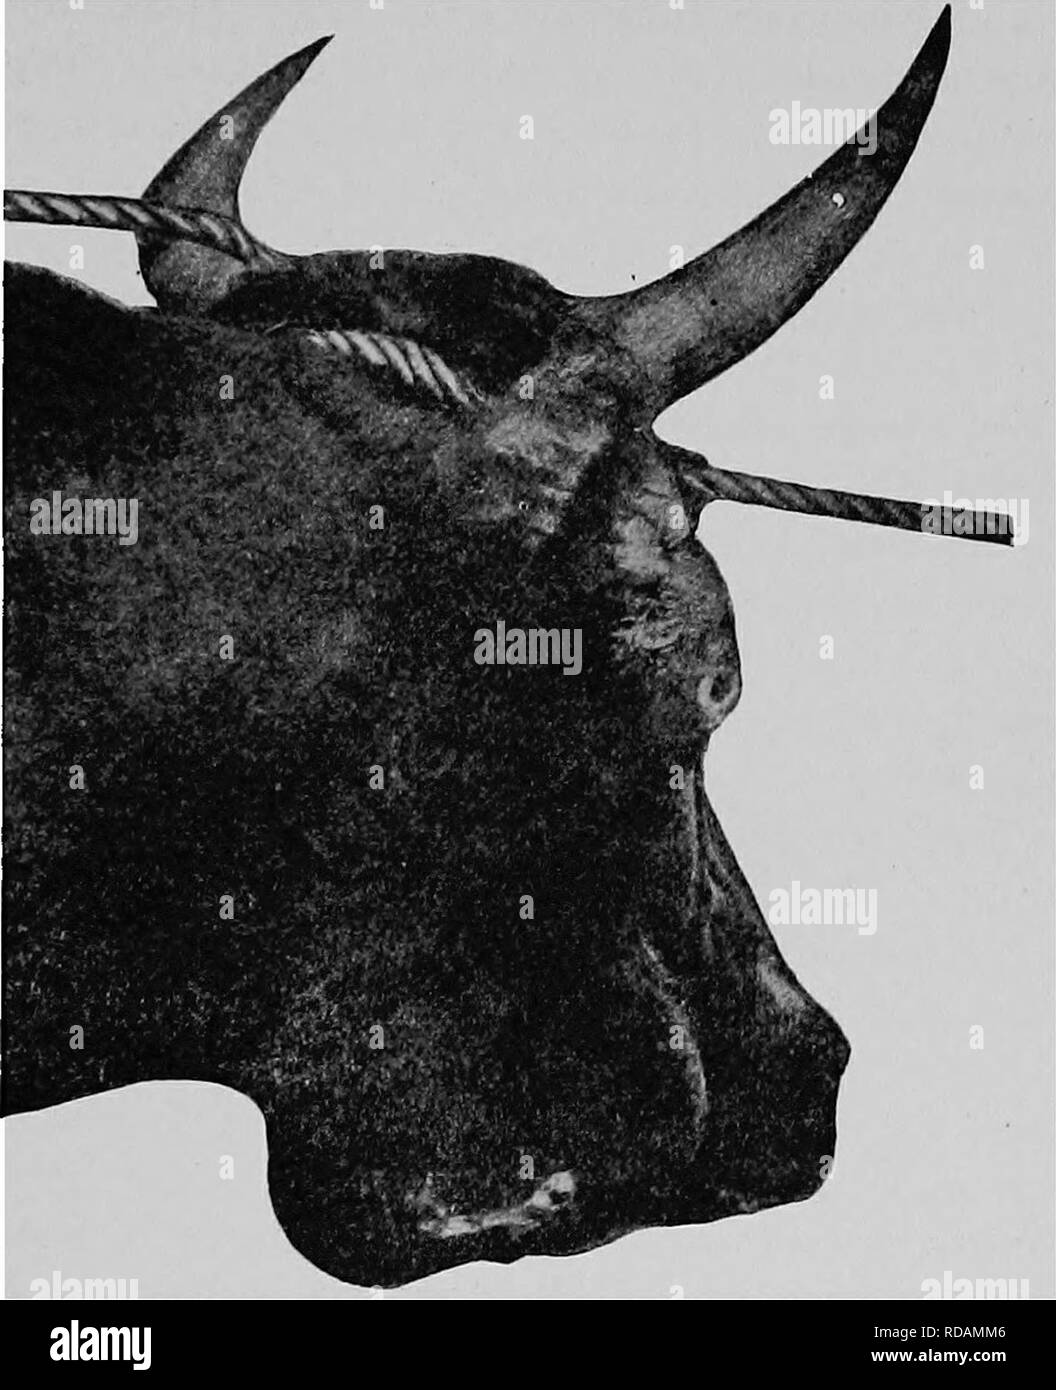 . The diseases of animals; a book of brief and popular advice on the care and the common ailments of farm animals. Veterinary medicine; Domestic animals. Lumpy Jaw of Cattle 415. Fig. 57, Lumpy Jaw, or actinomycosis. they will be found to be rosettes of club-shaped fungi. This fungus {Oladothrix actinomyces var. bovis) is the cause of the disease. If the tumor is free from the bone, the best treatment is to remove it with the knife, and treat the part as a simple wound. If it cannot be removed, in many cases it can be cured by giving iodide of potash internally in. Please note that these image - Stock Image